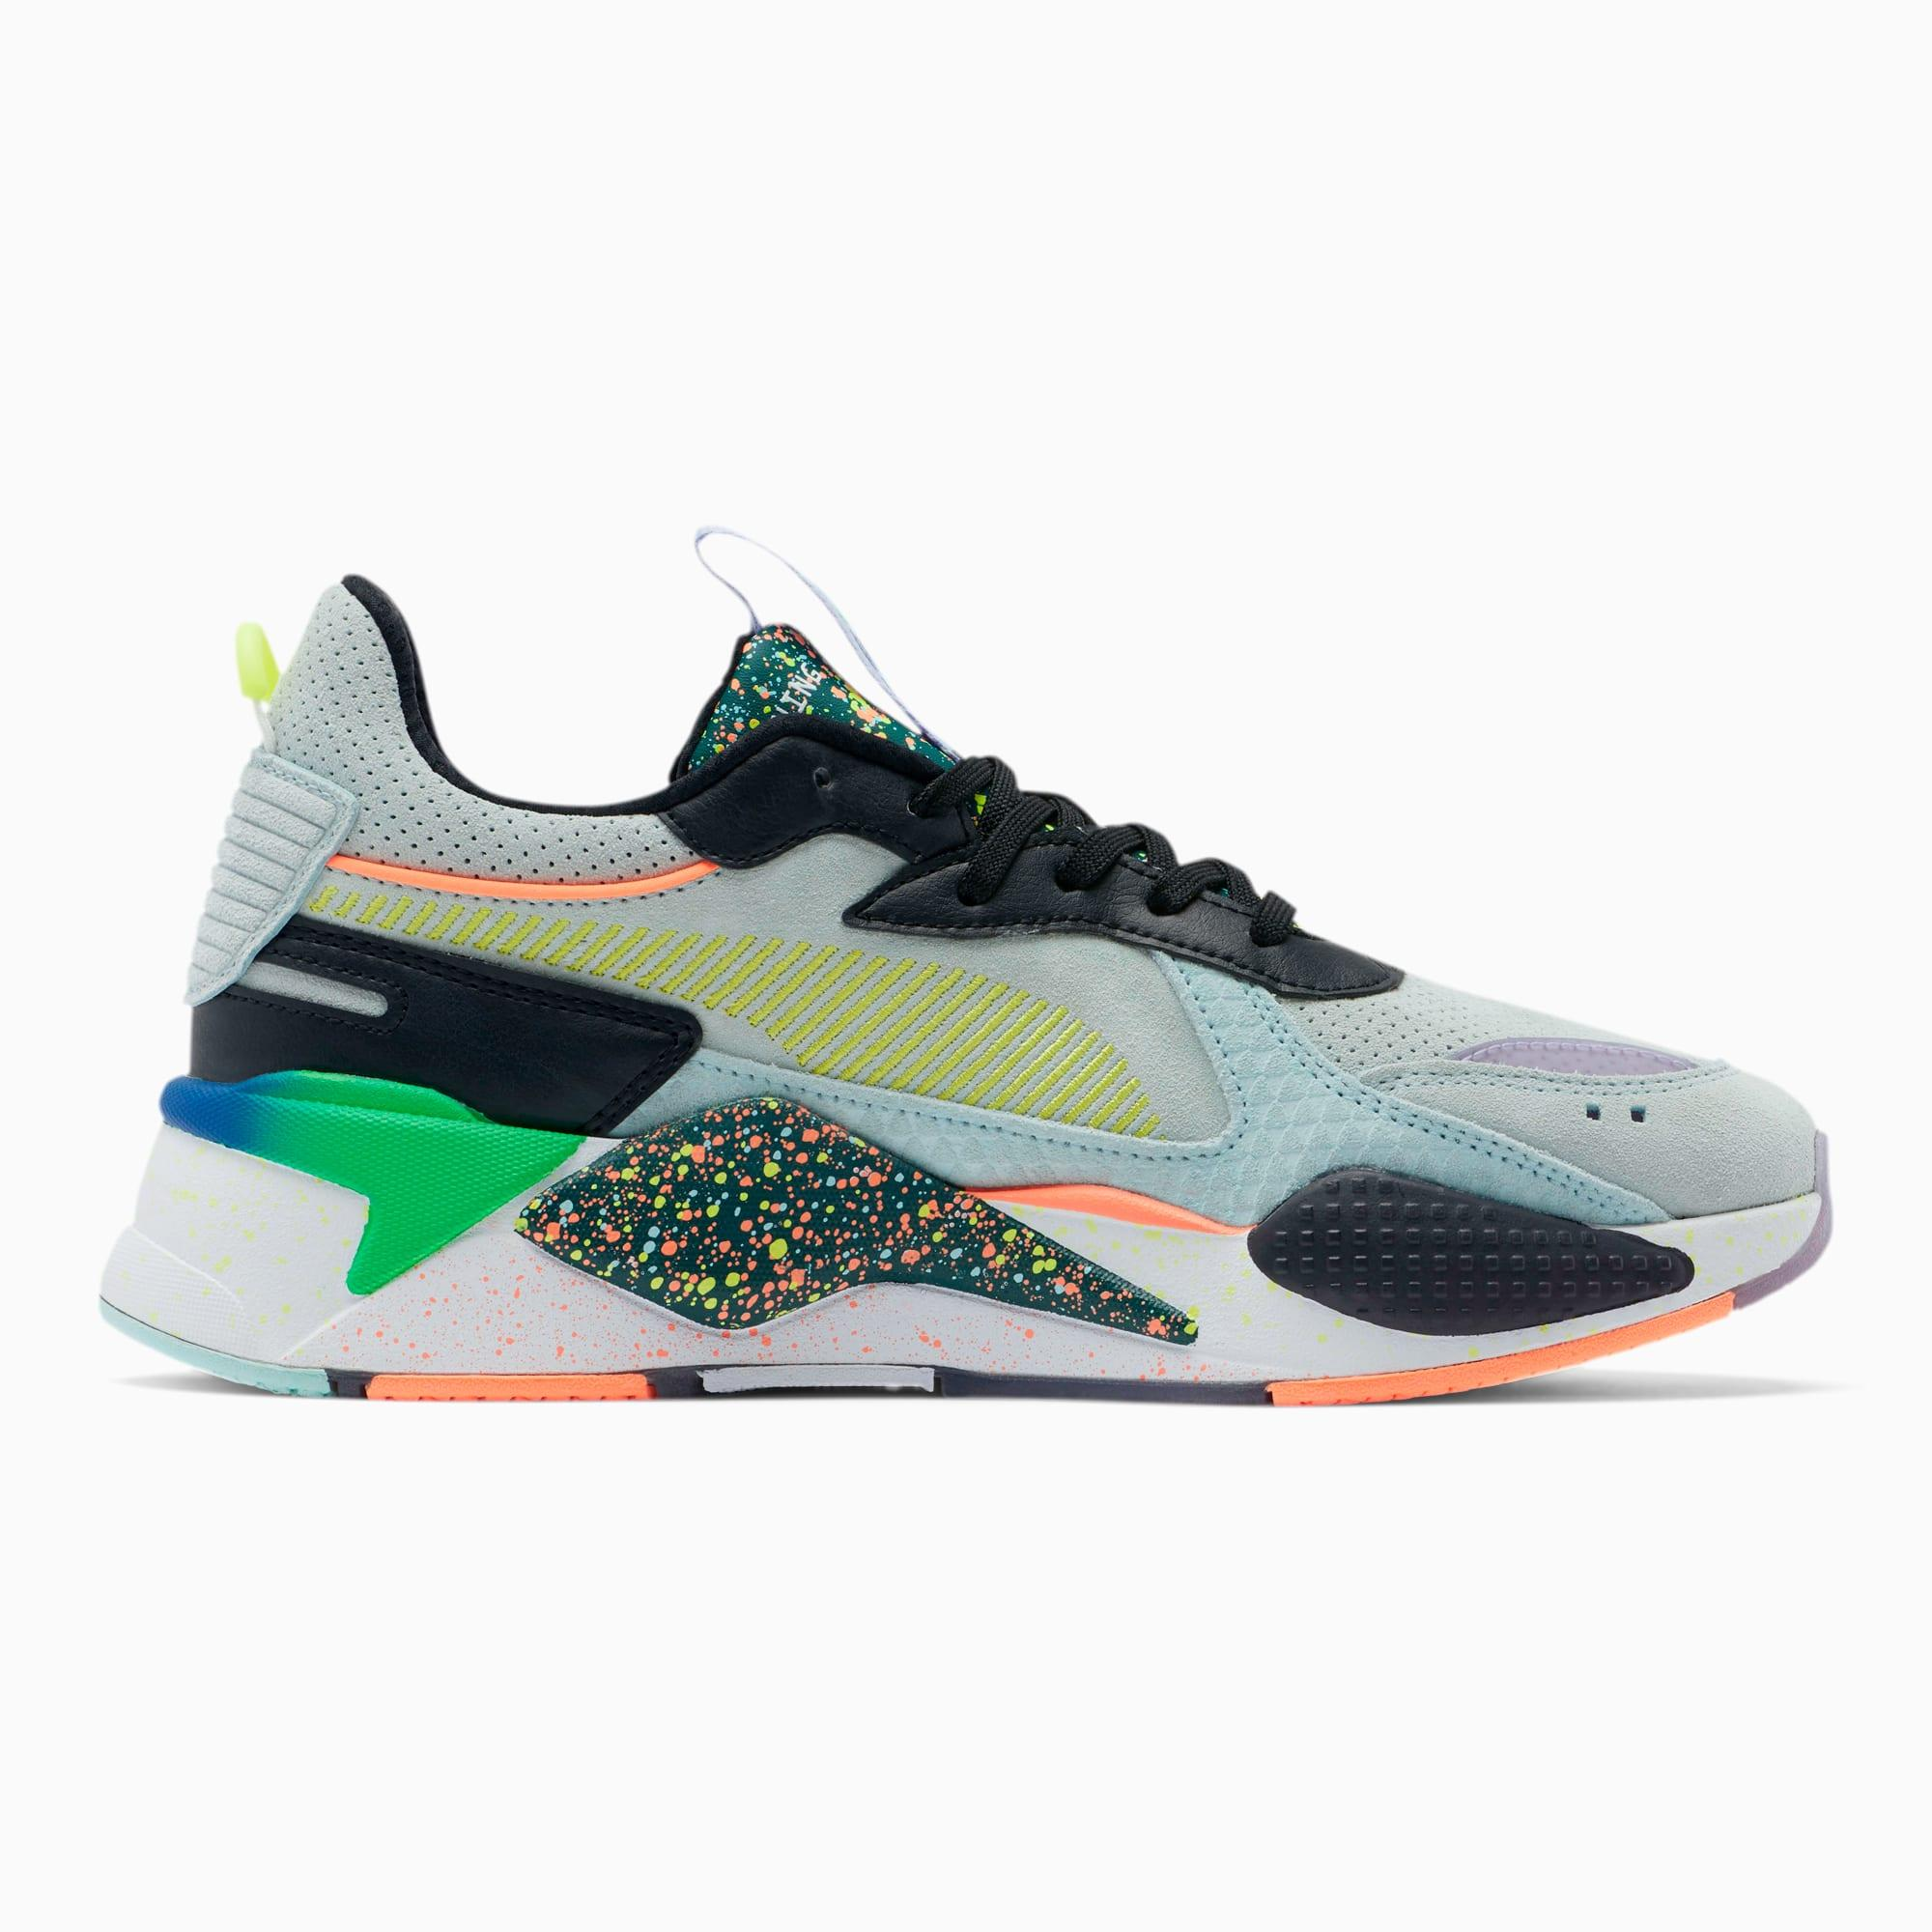 PUMA Leather Rs-x Running Shoes for Men